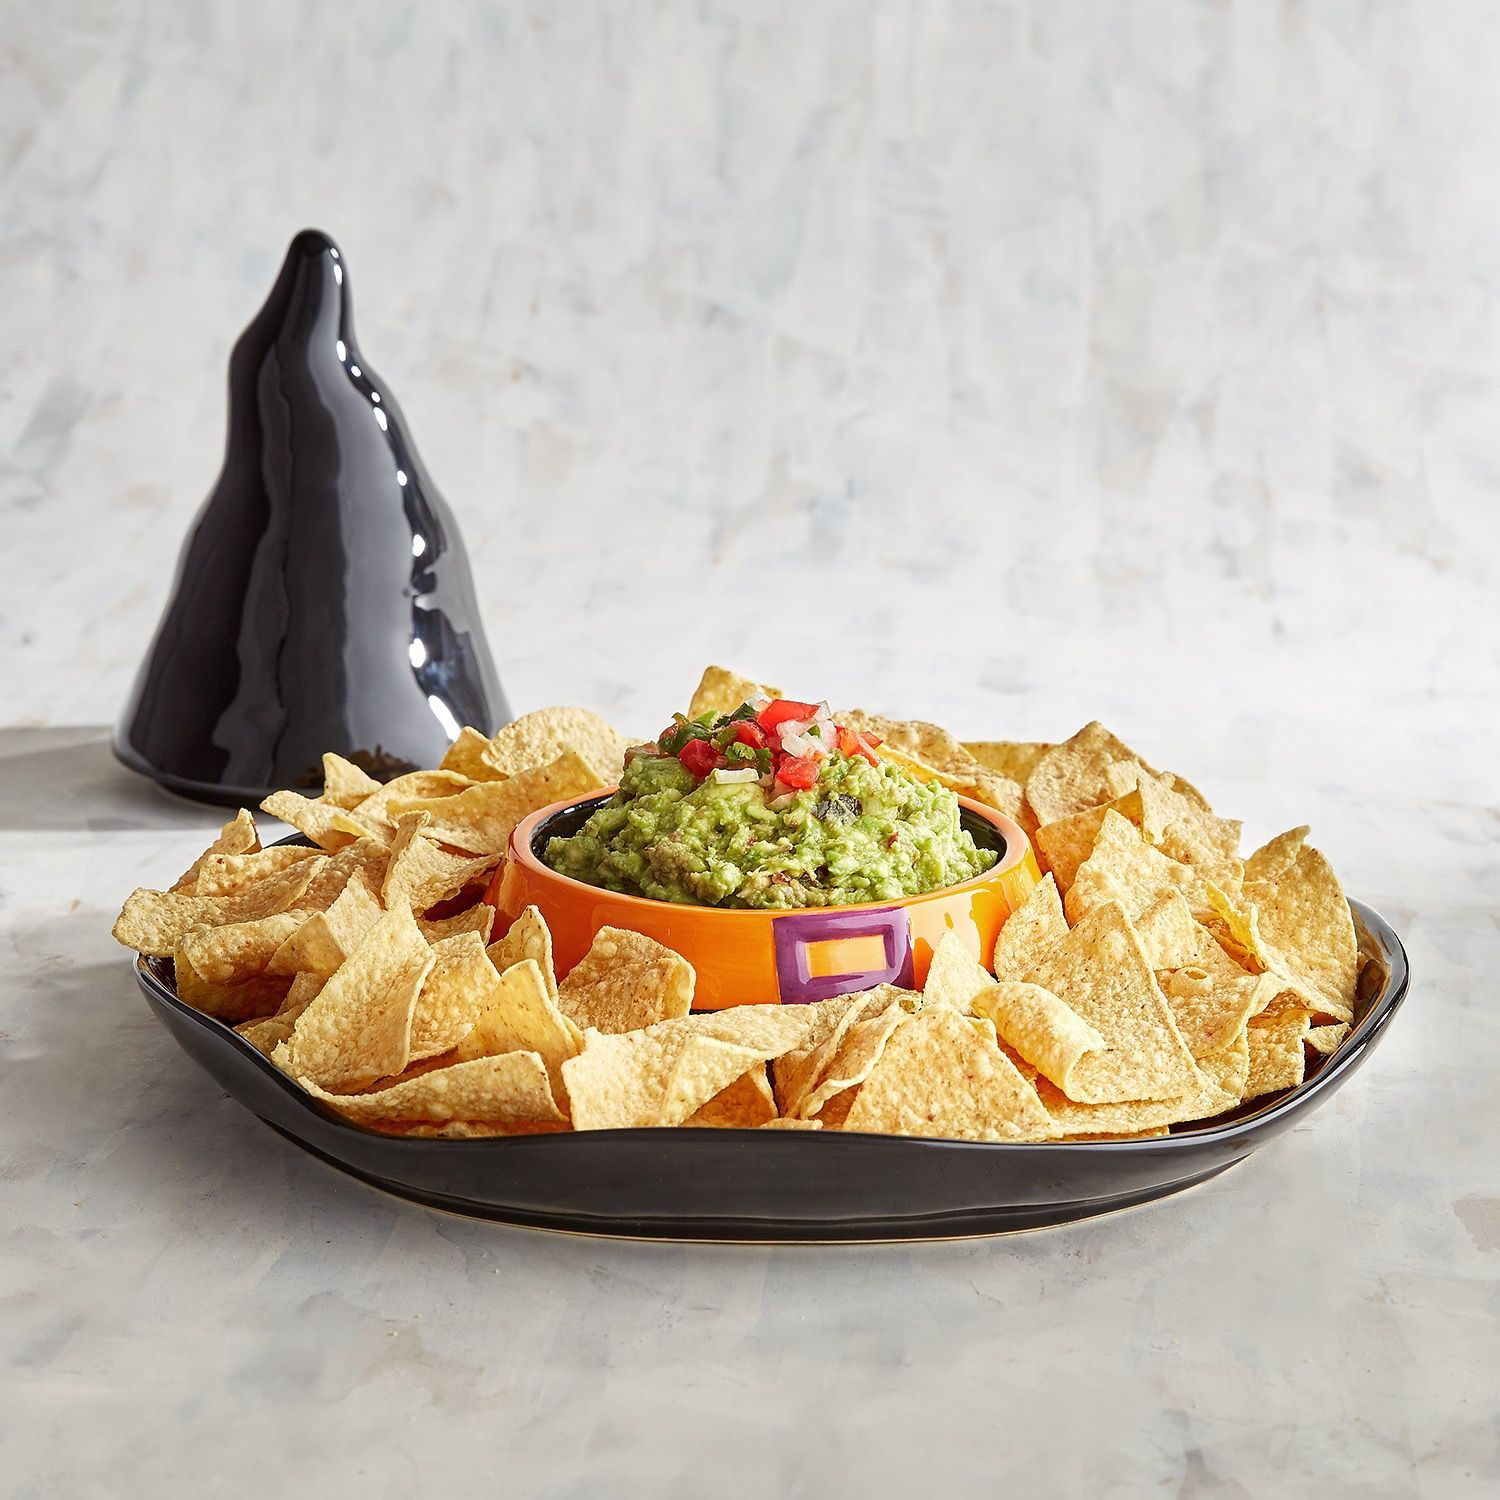 pier 1's new halloween decorations are spooky and sweet | taste of home